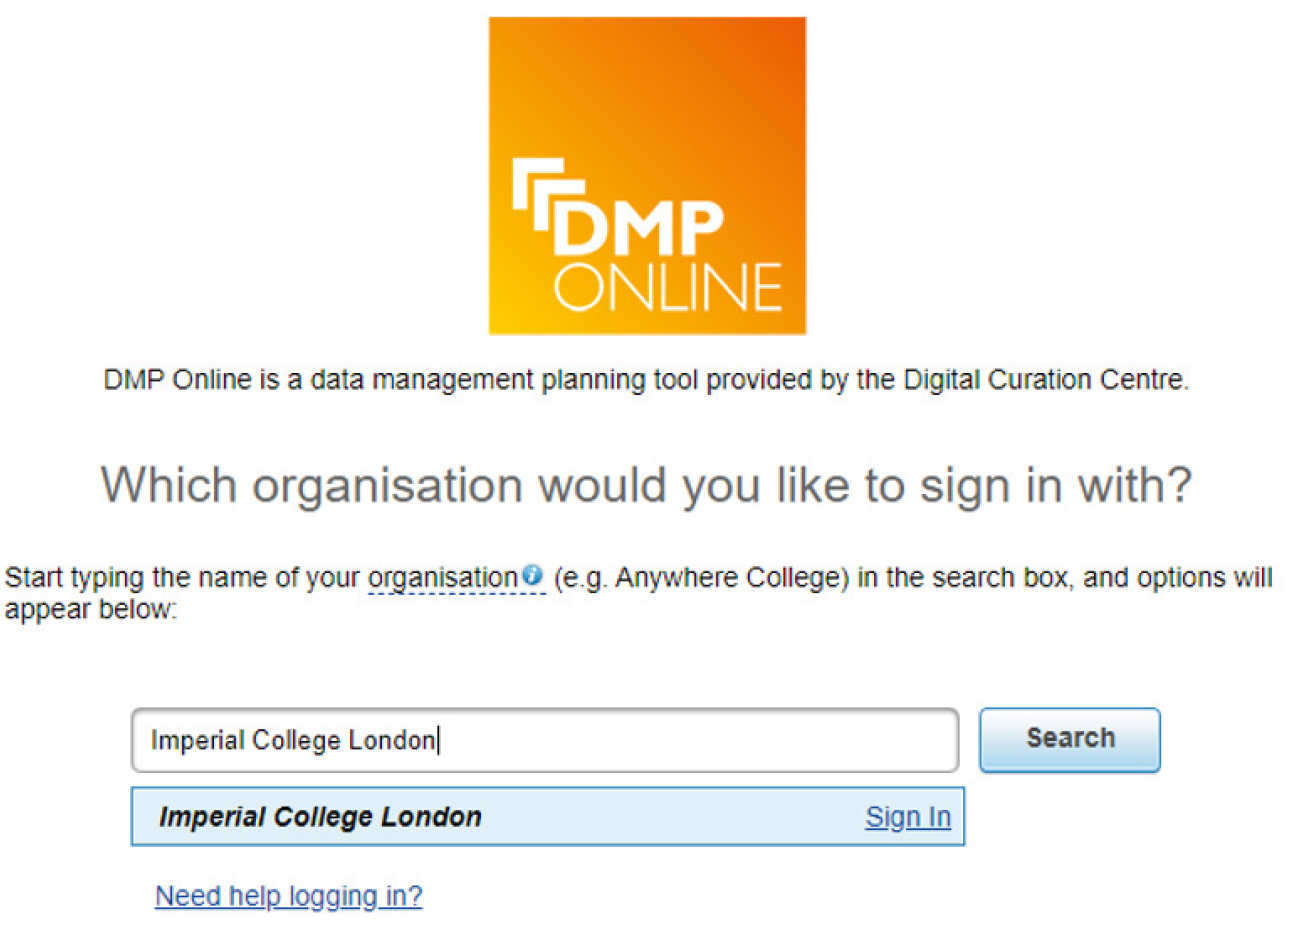 DMPOnline organisation look up